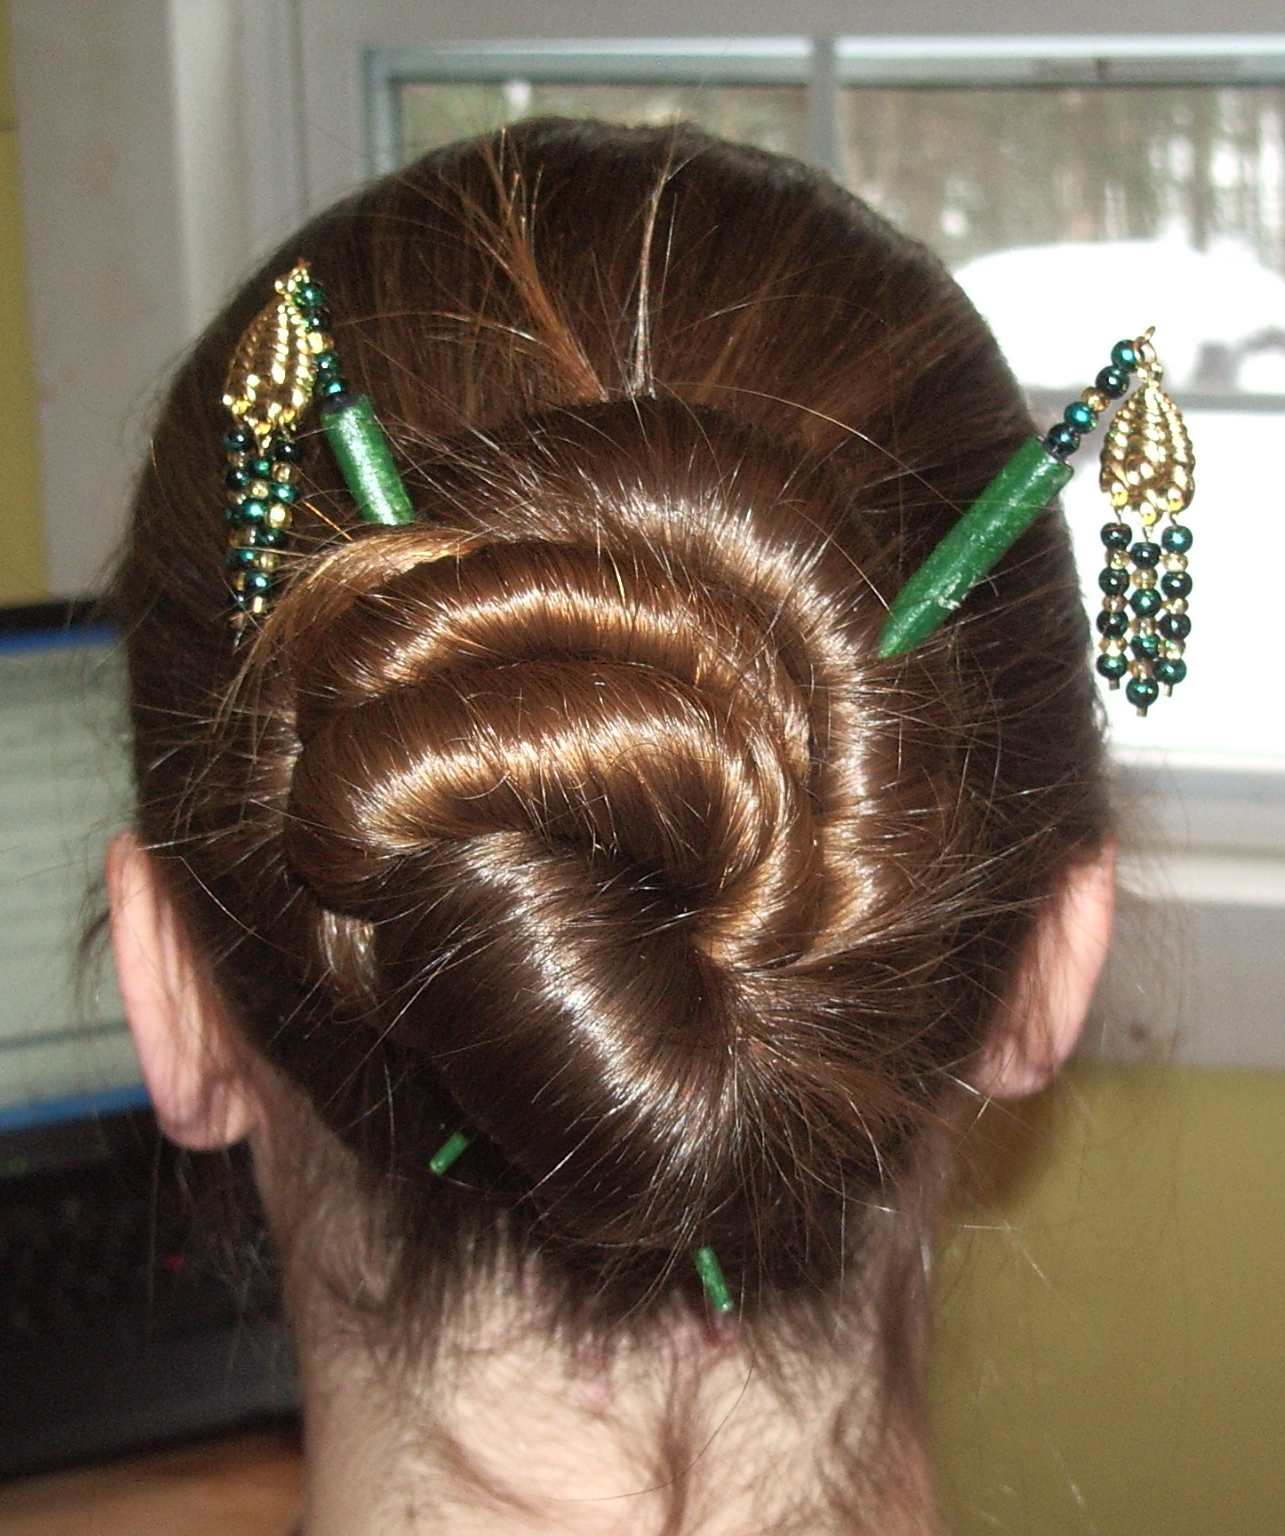 Hairstyles For Hair Sticks: 9 Steps (With Pictures) Within Popular Cinnamon Bun Braided Hairstyles (View 13 of 20)